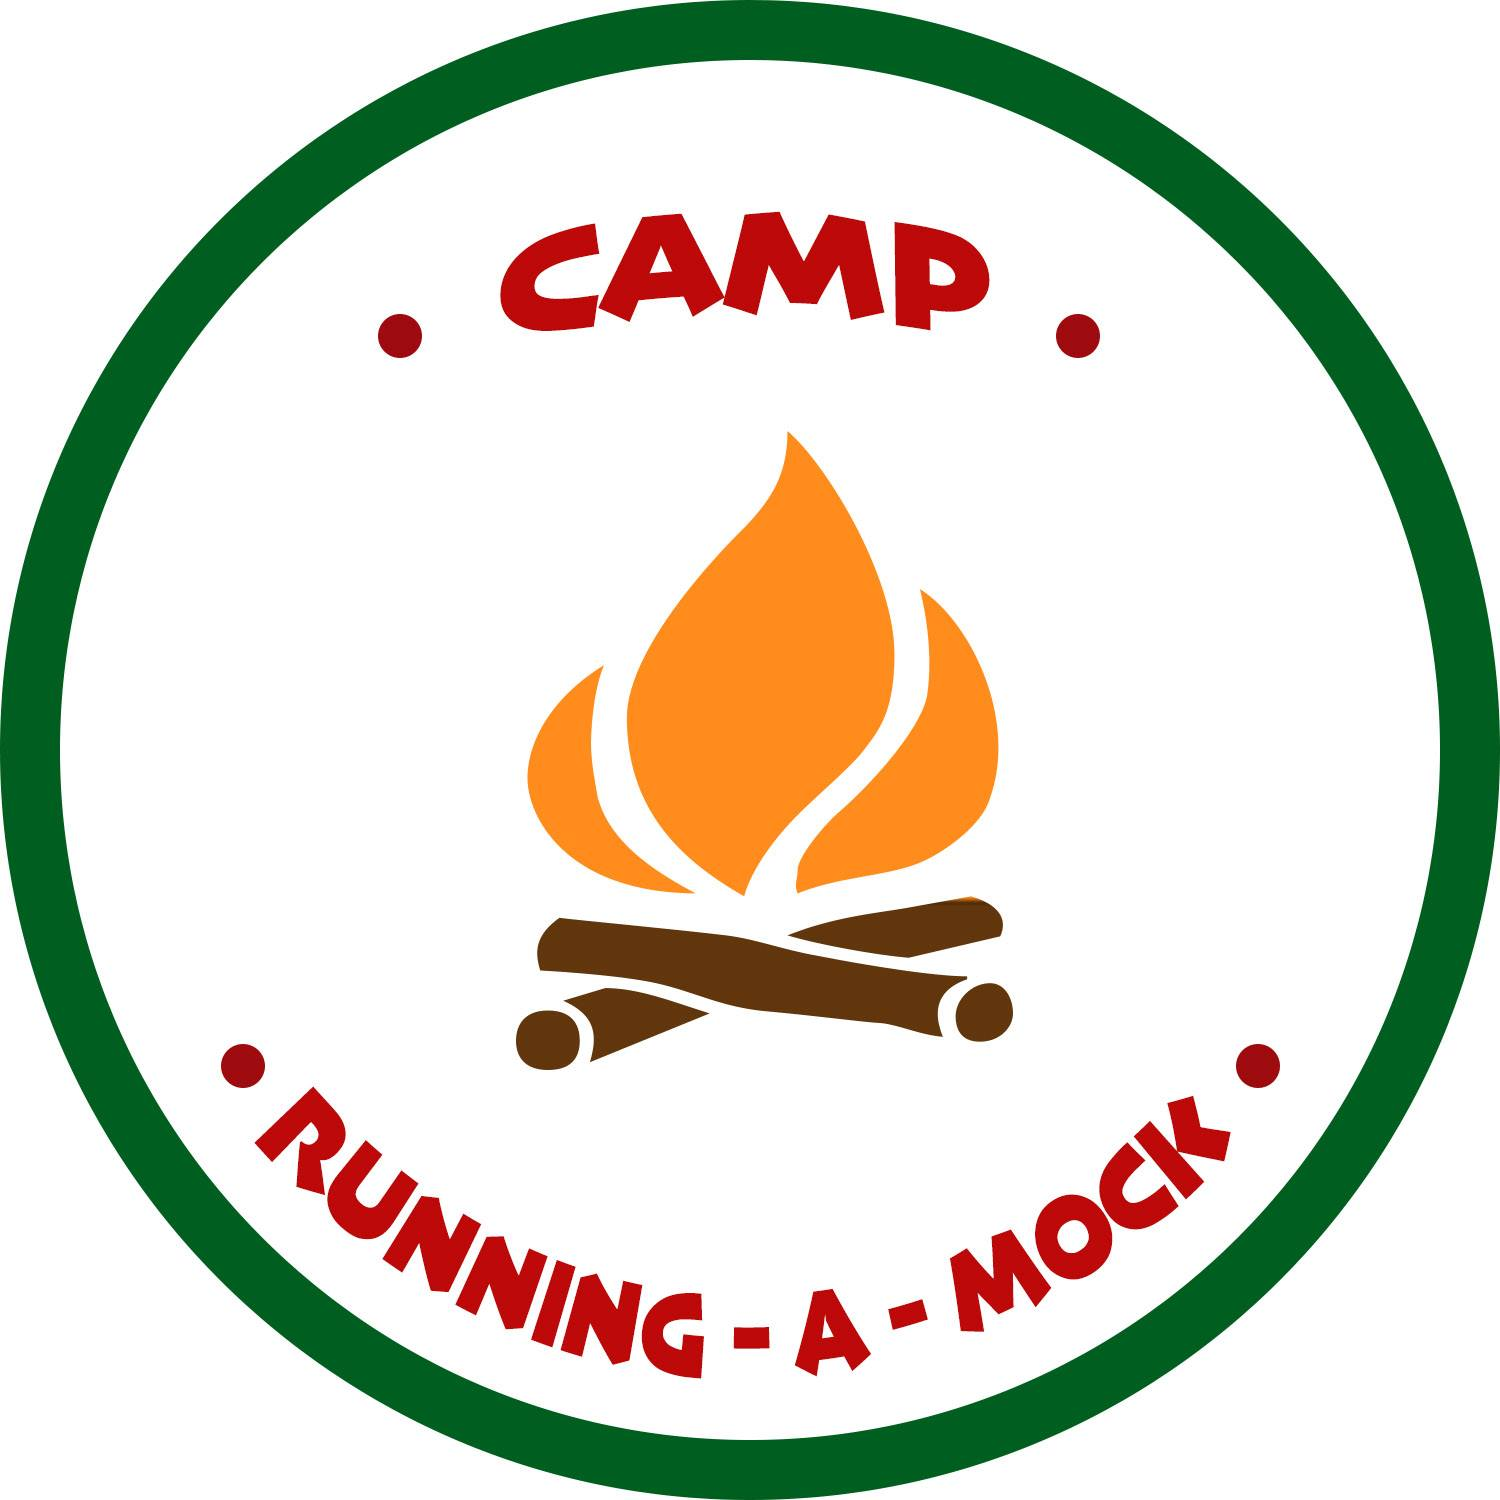 Camp Running-a-Mock